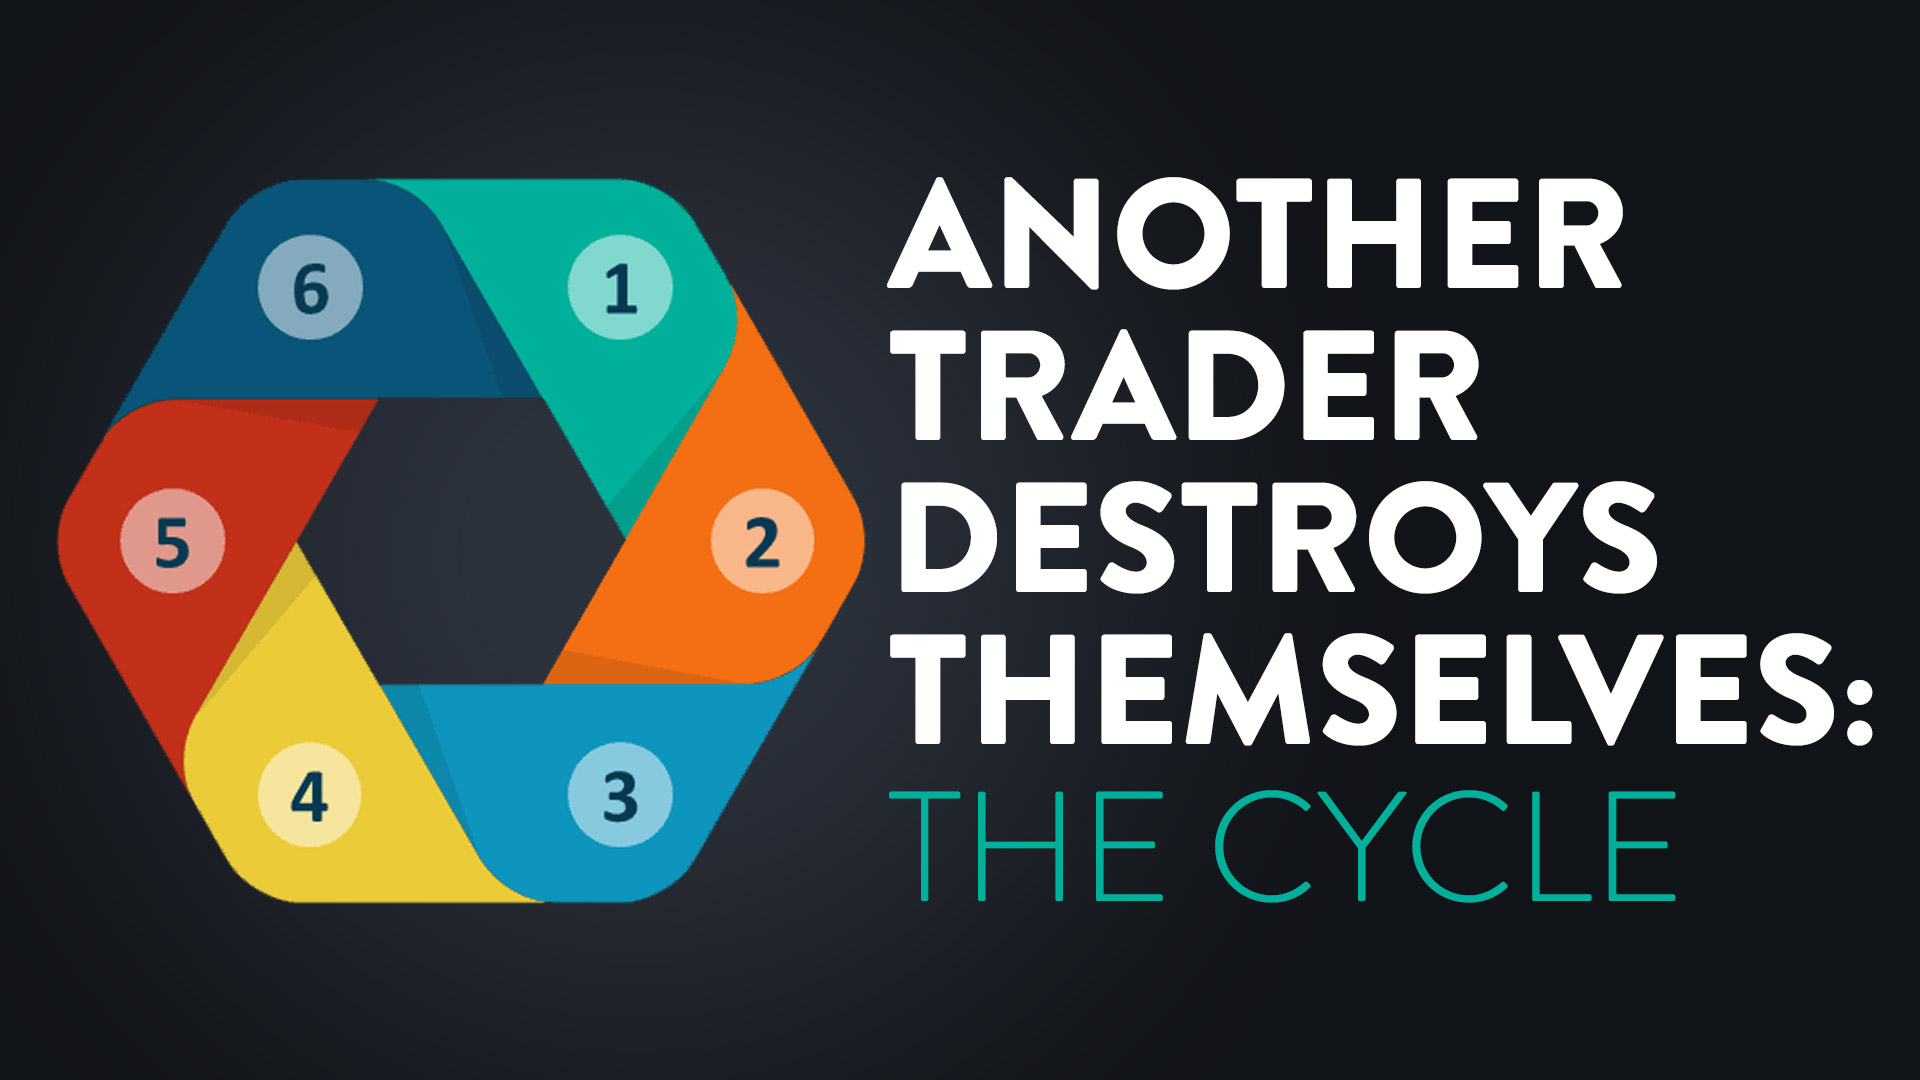 Another Trader Destroys Themselves: The Cycle